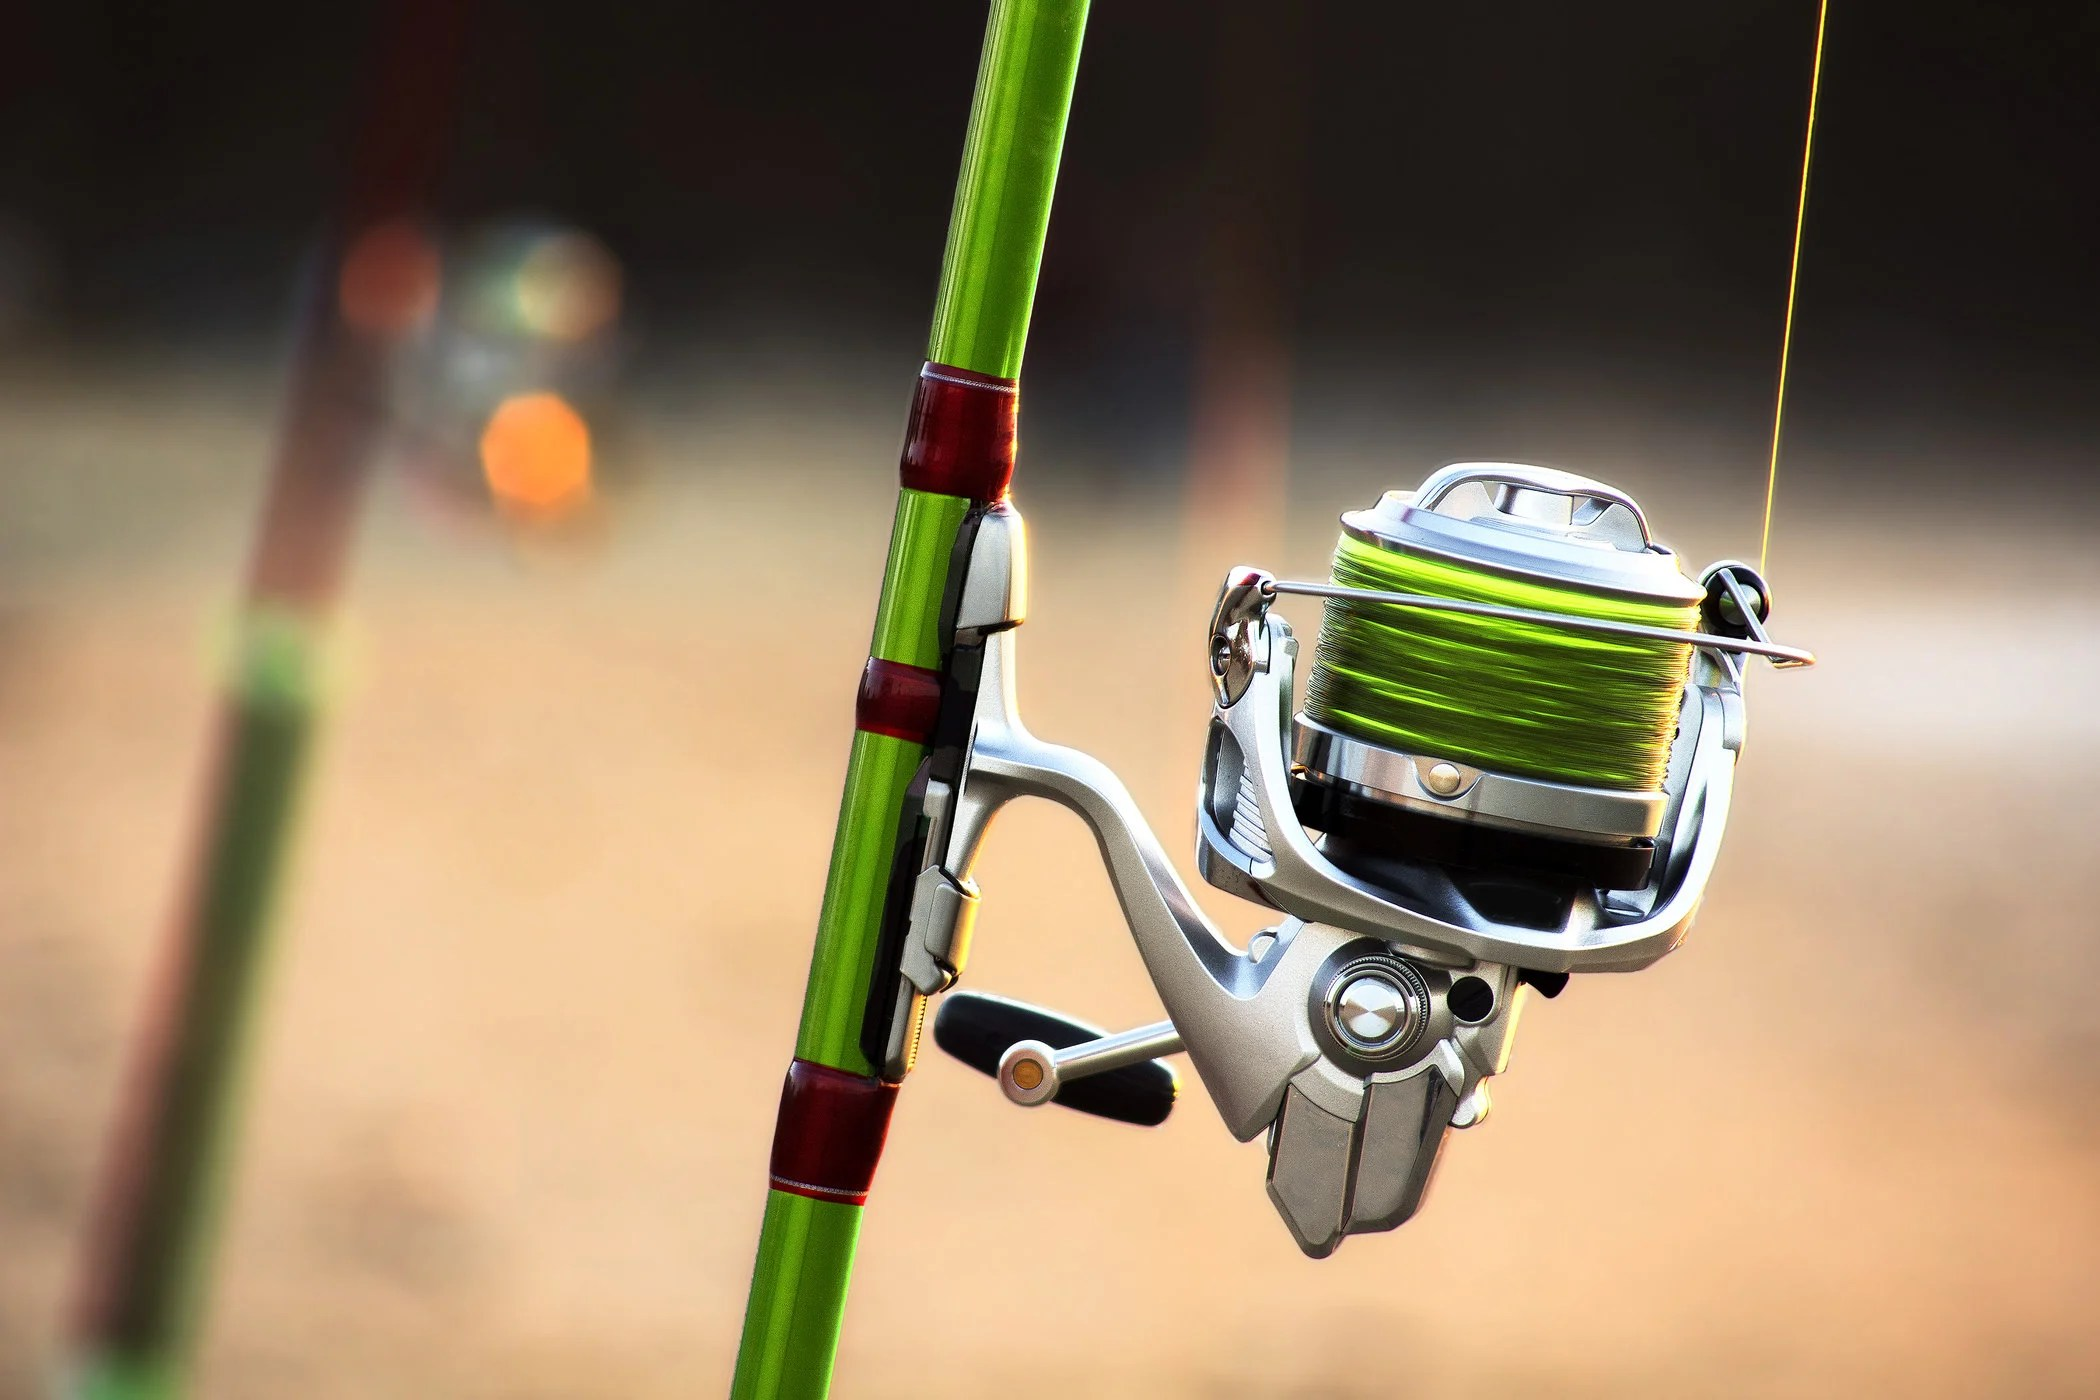 a closeup of a green fishing rod with a spinning reel and a green fishing line